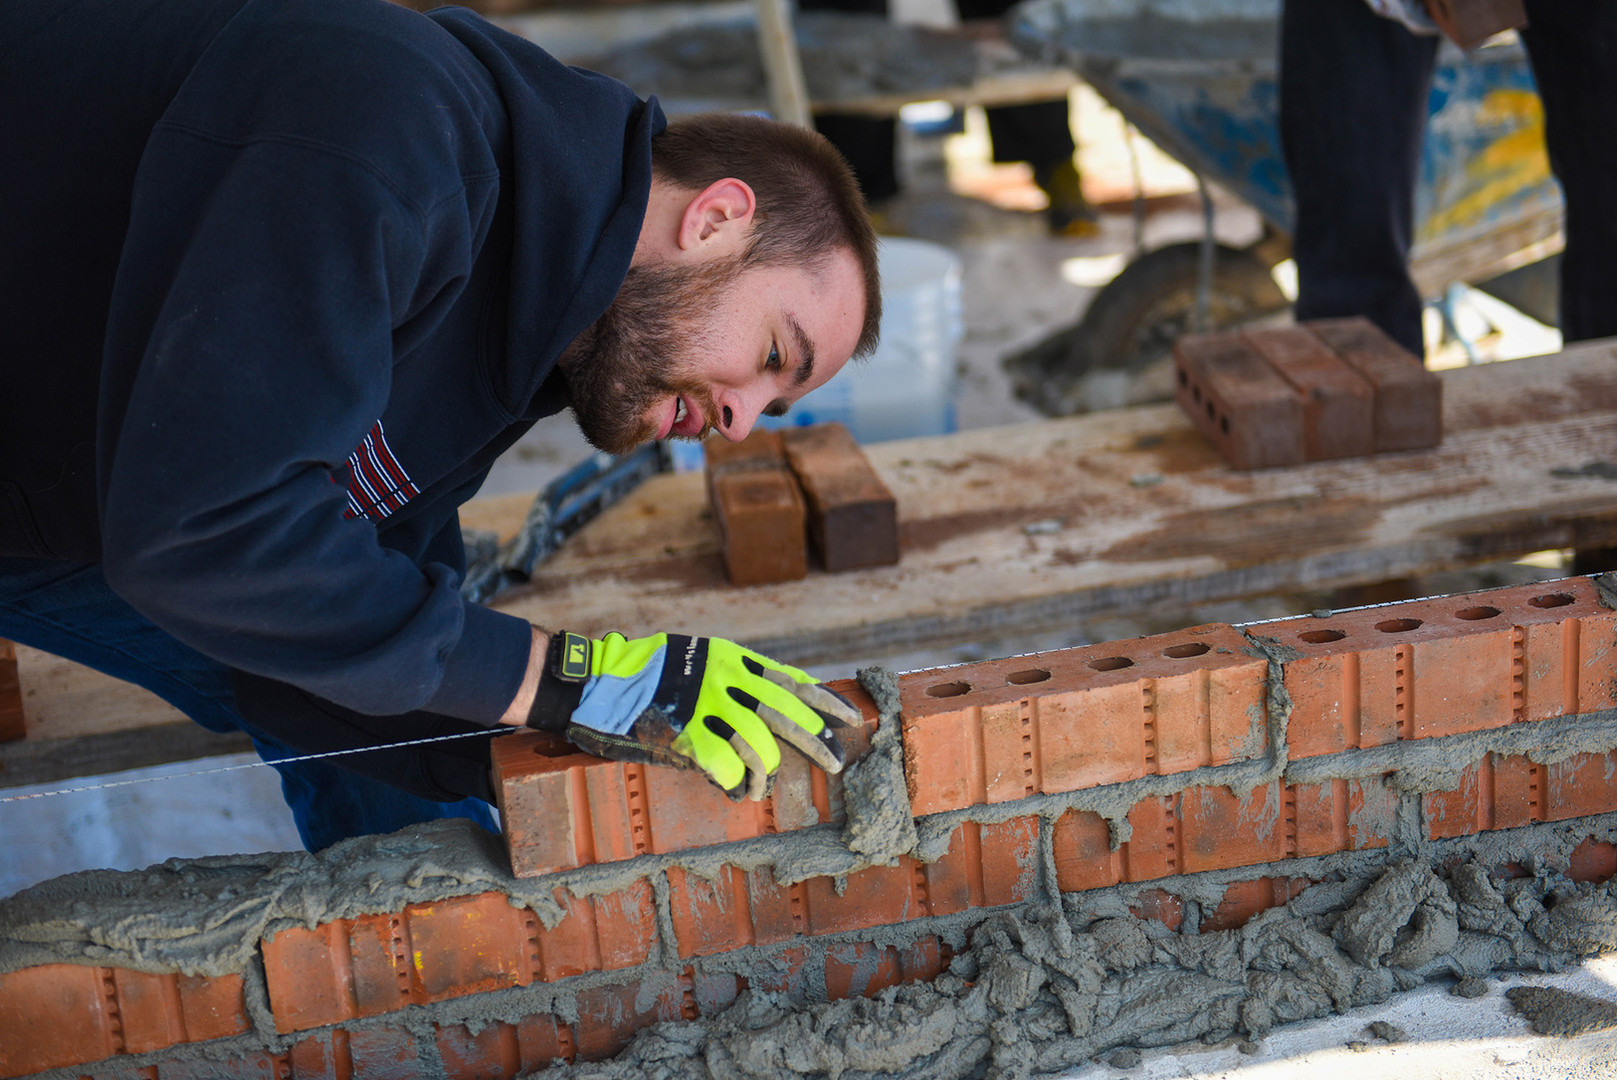 Jacob participates in a Bricklaying contest